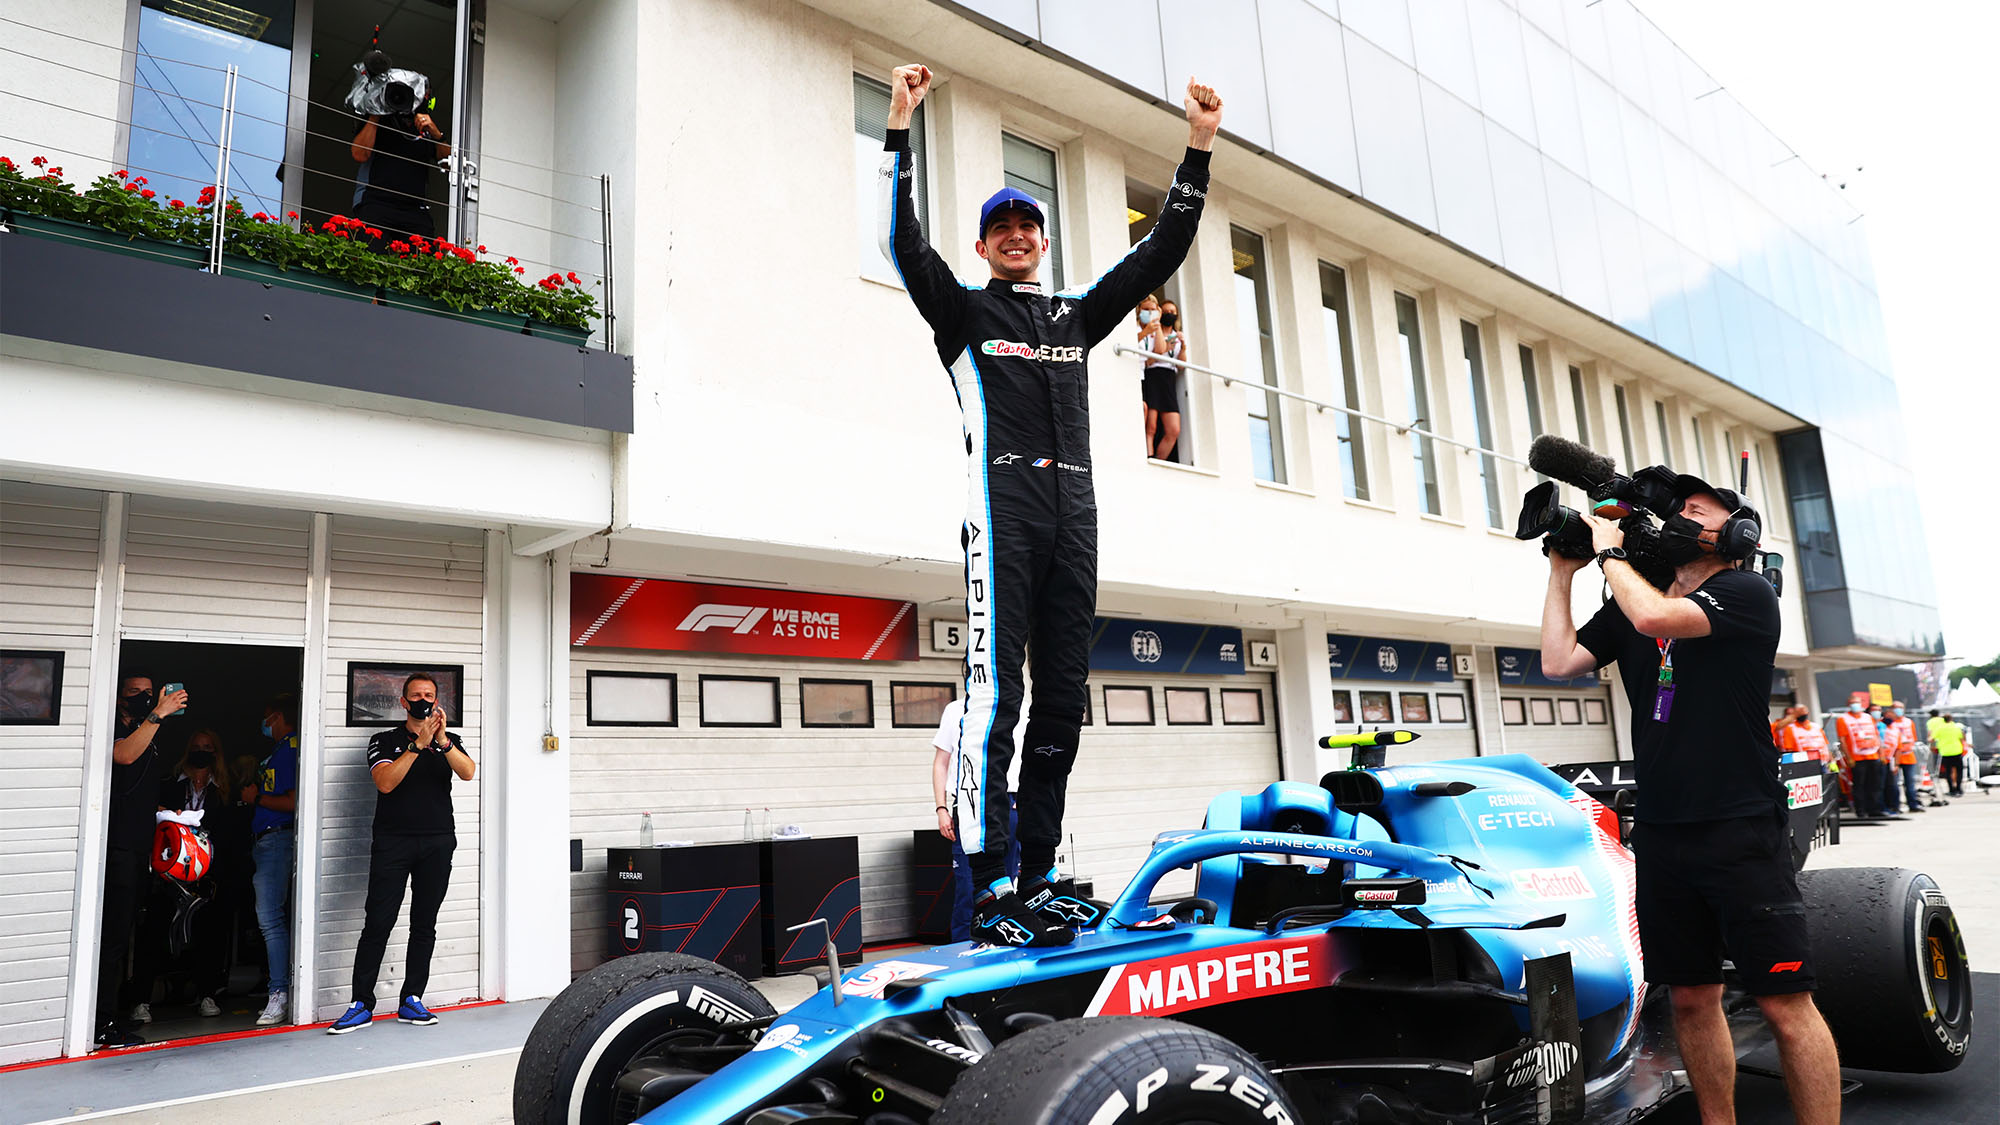 BUDAPEST, HUNGARY - AUGUST 01: Race winner Esteban Ocon of France and Alpine F1 Team celebrates in parc ferme during the F1 Grand Prix of Hungary at Hungaroring on August 01, 2021 in Budapest, Hungary. (Photo by Dan Istitene - Formula 1/Formula 1 via Getty Images)